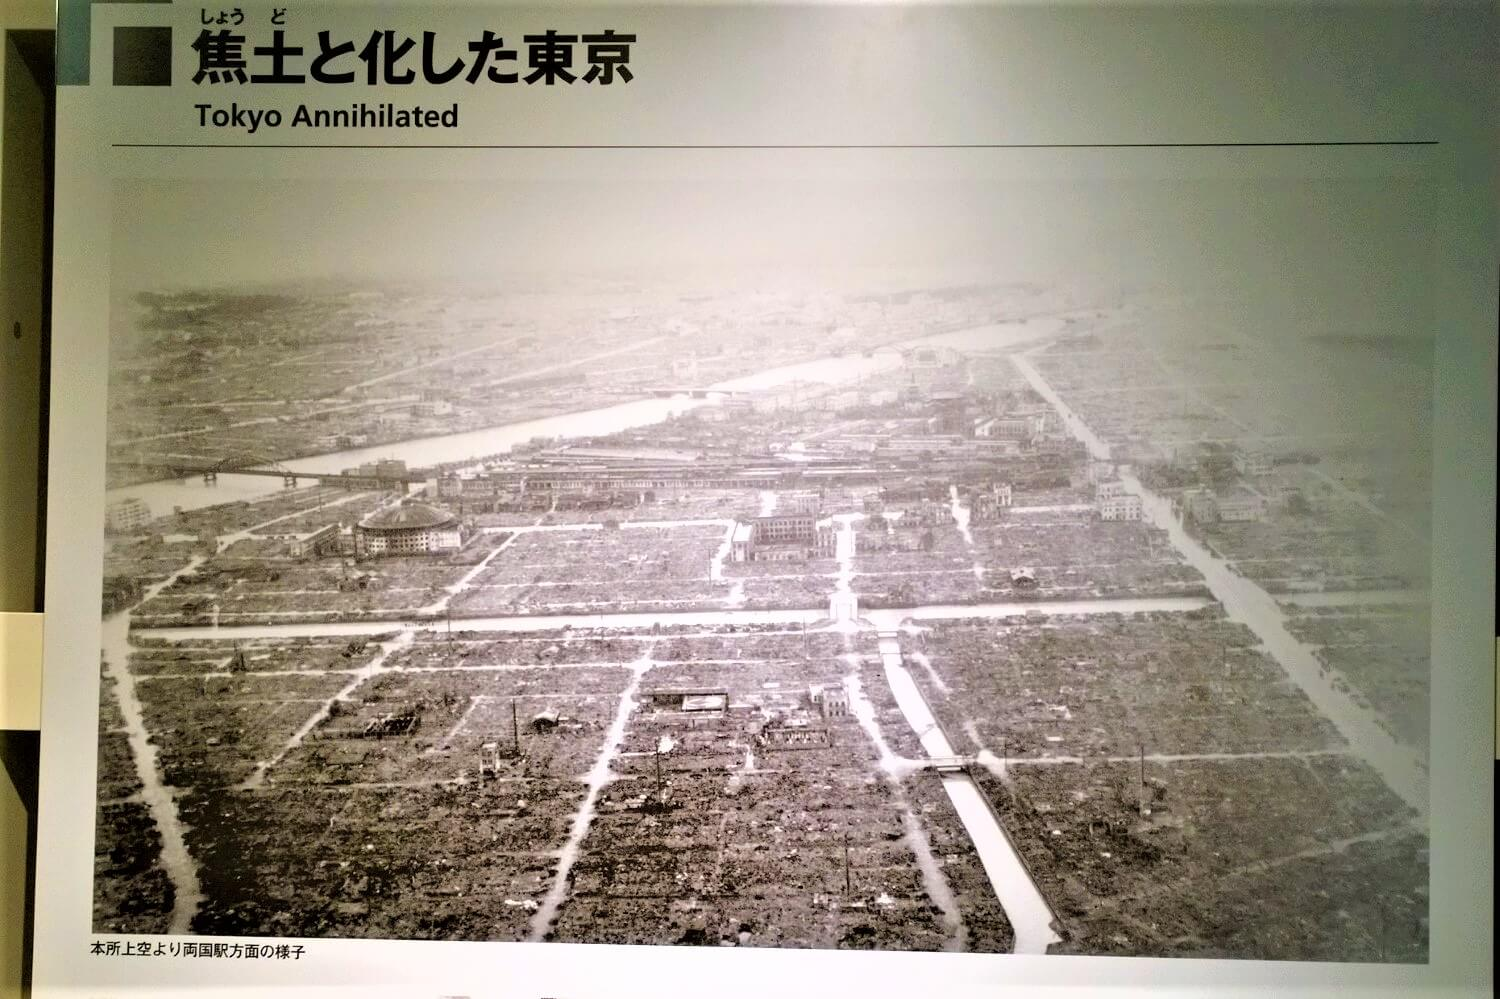 History: The City of Tokyo after the Second World War